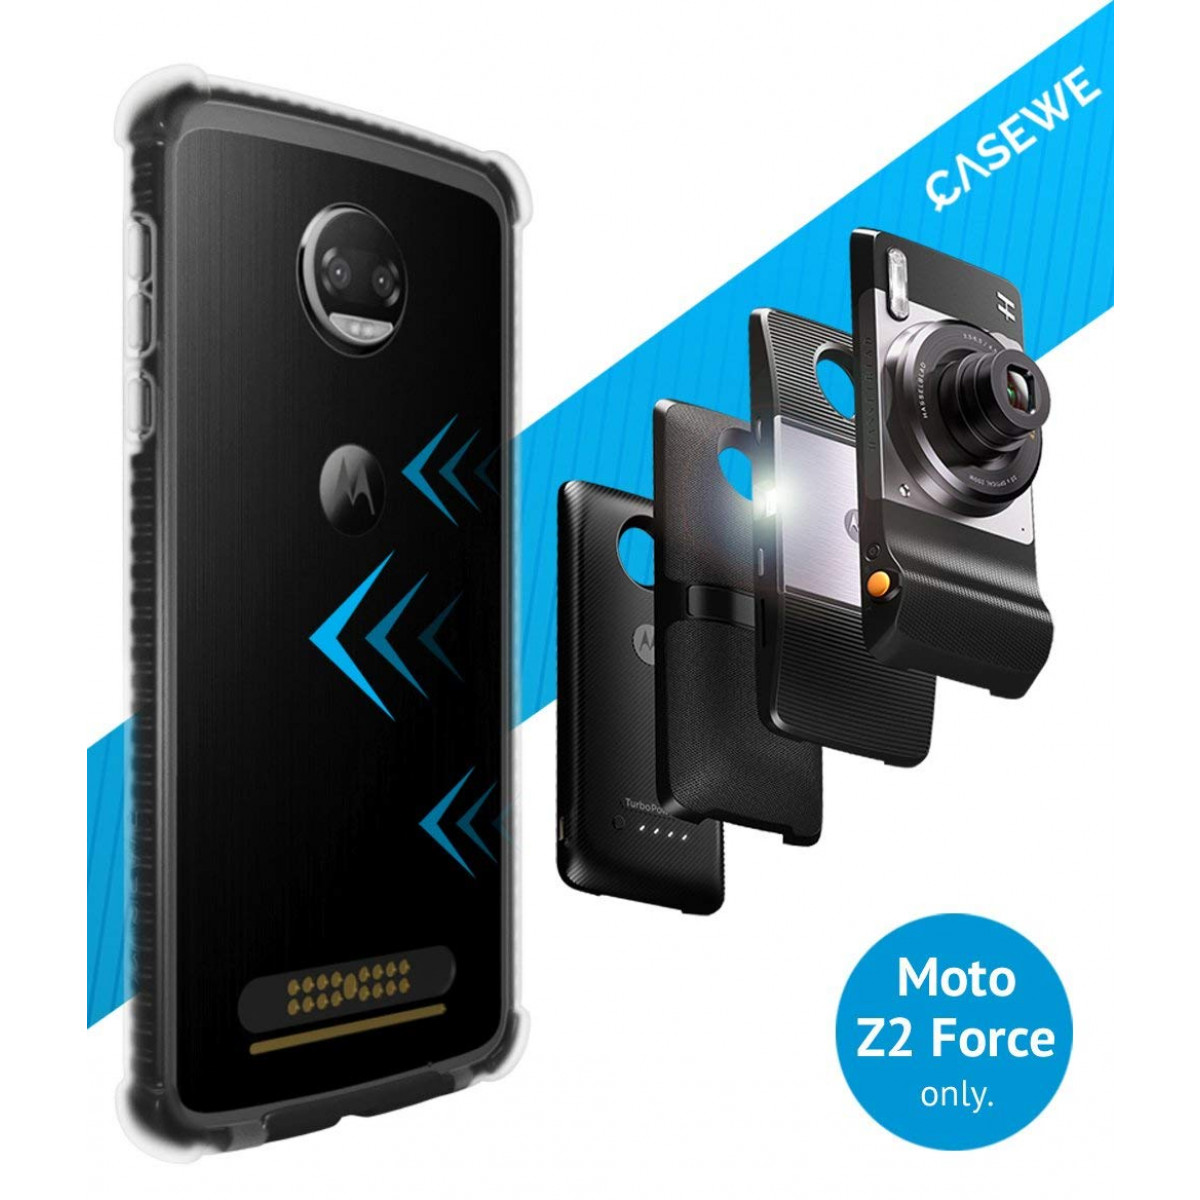 quality design 0ccda 0cba9 CaseWe - Motorola Moto Z2 Force Protective Bumper Case Cover/Compatible  with Moto Mods - Clear and Matte Black